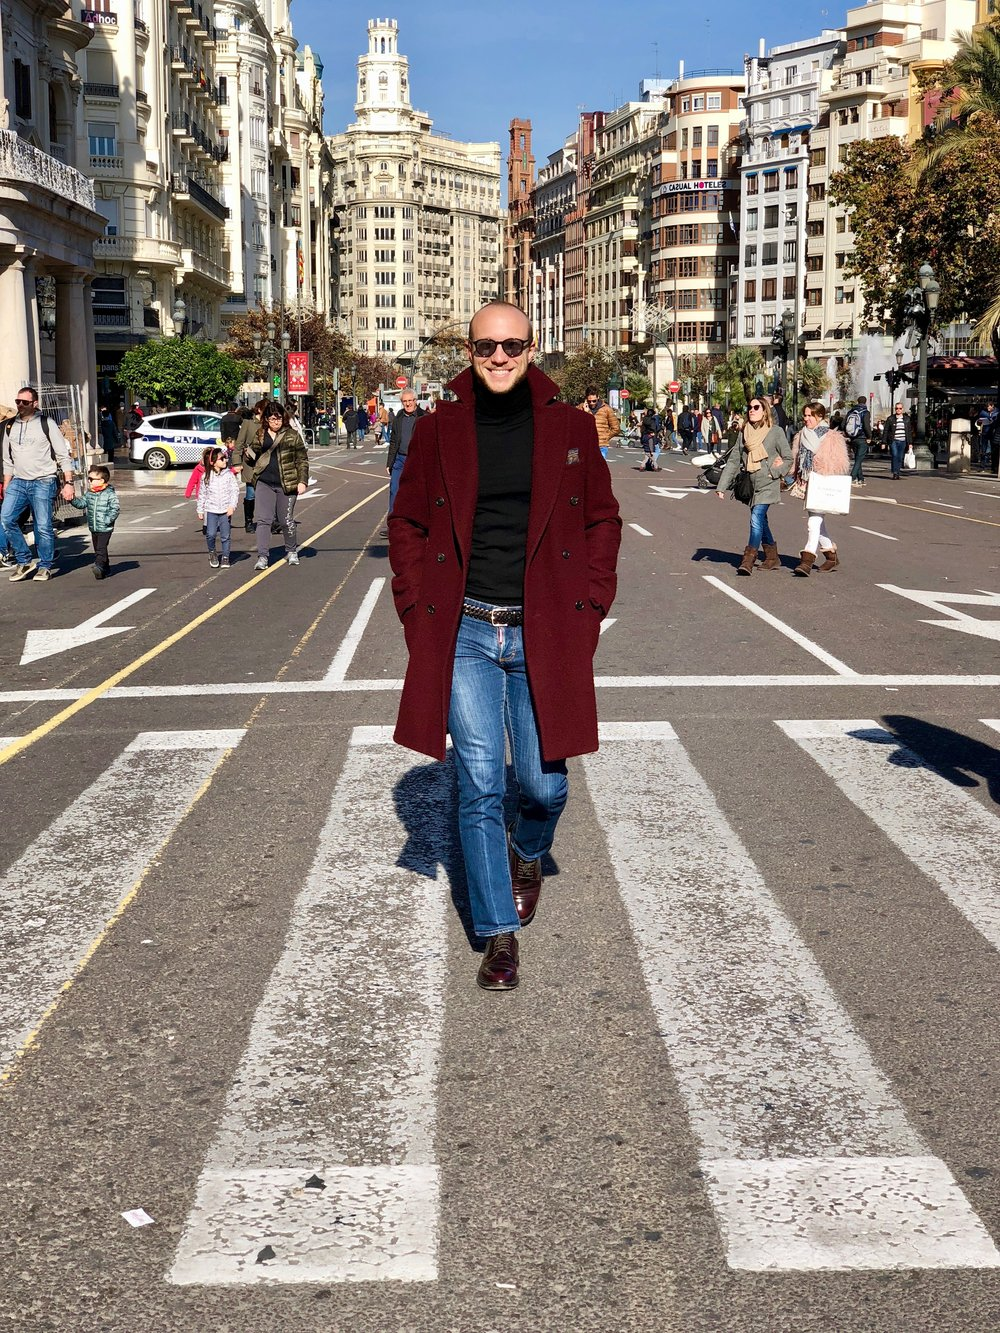 Yours truly, walking around Sunny Valencia on a casual winter afternoon. MTM casentino coat,  Paolo Pecora  merinos turtle neck,  Dsquared2  denim,  Doucal's  cordovan derbies.